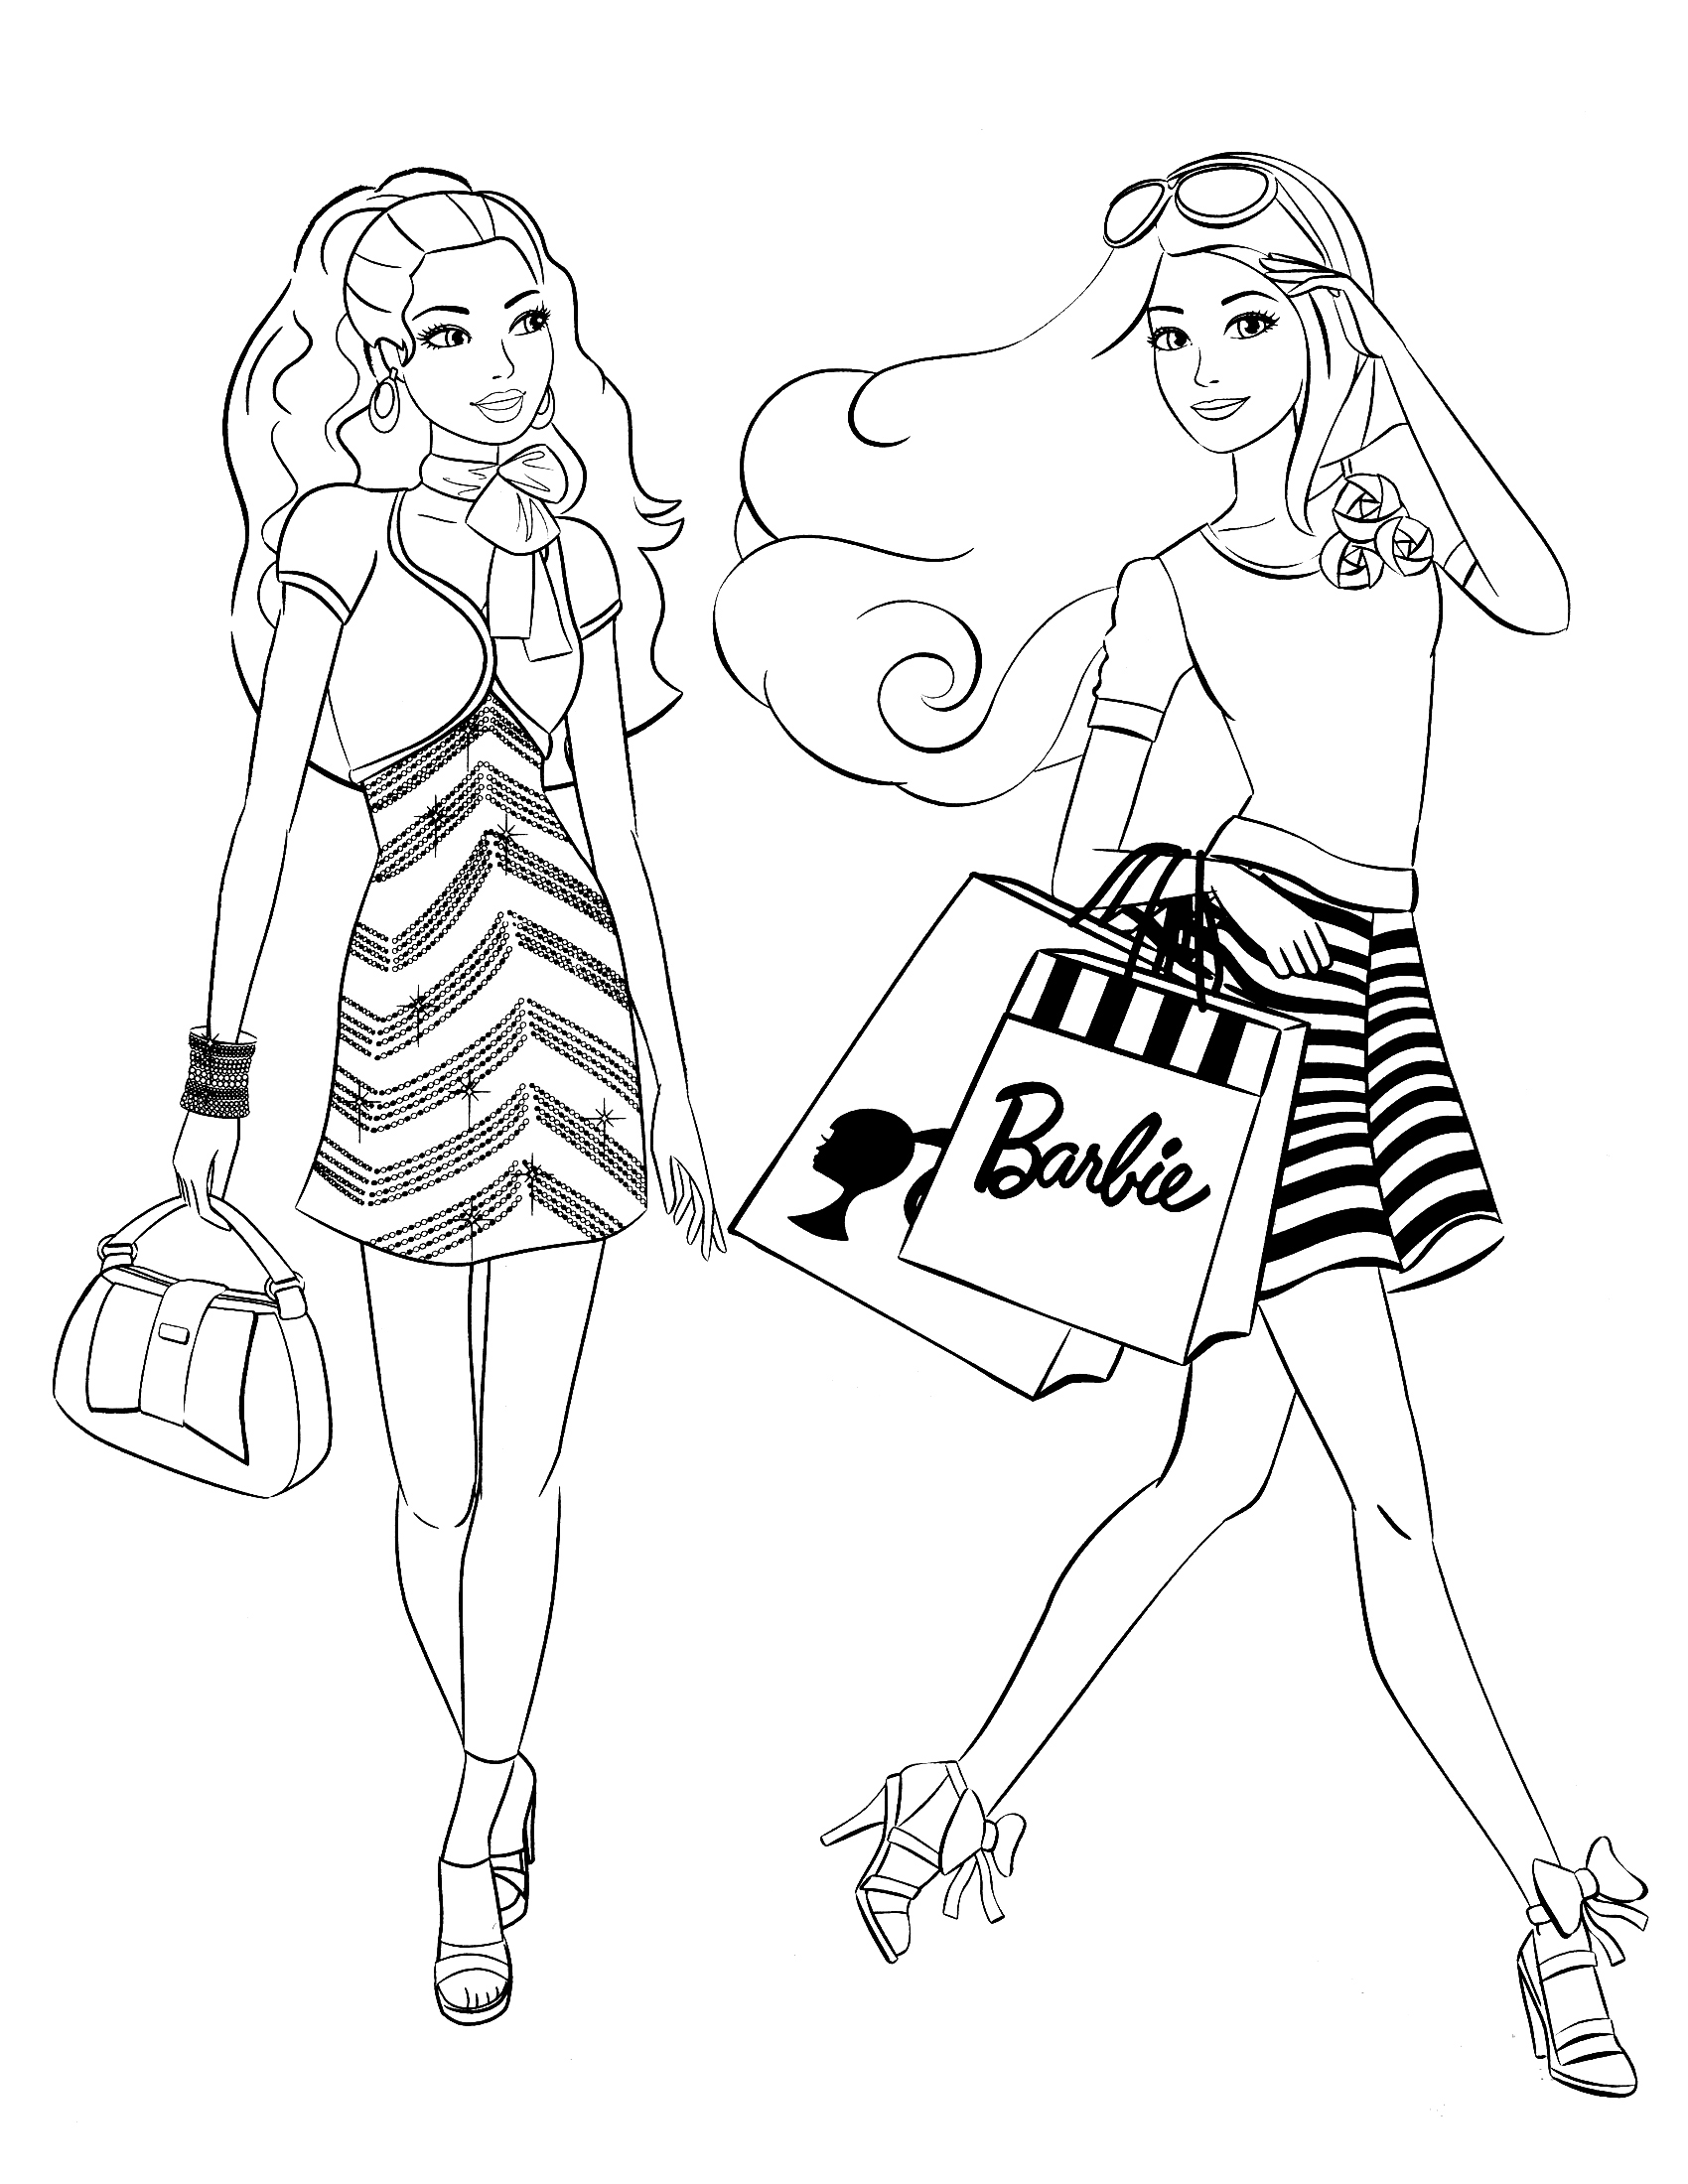 barbie coloring book 40 barbie coloring pages for kids barbie coloring book 1 1